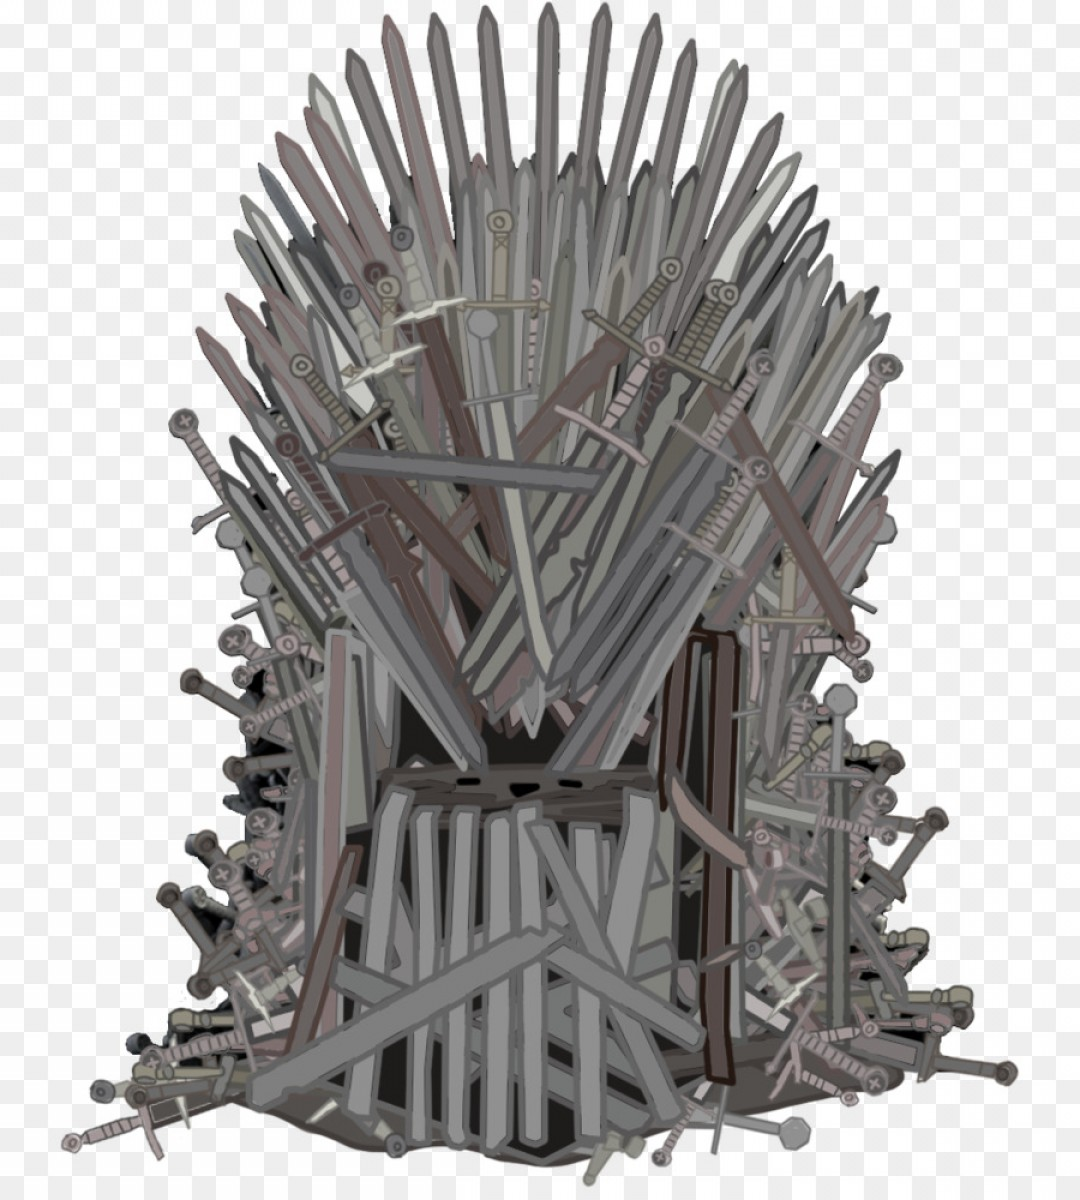 Game Of Thrones Sword Silhouette Vector: Png Eddard Stark Iron Throne Drawing Game Of Thrones S